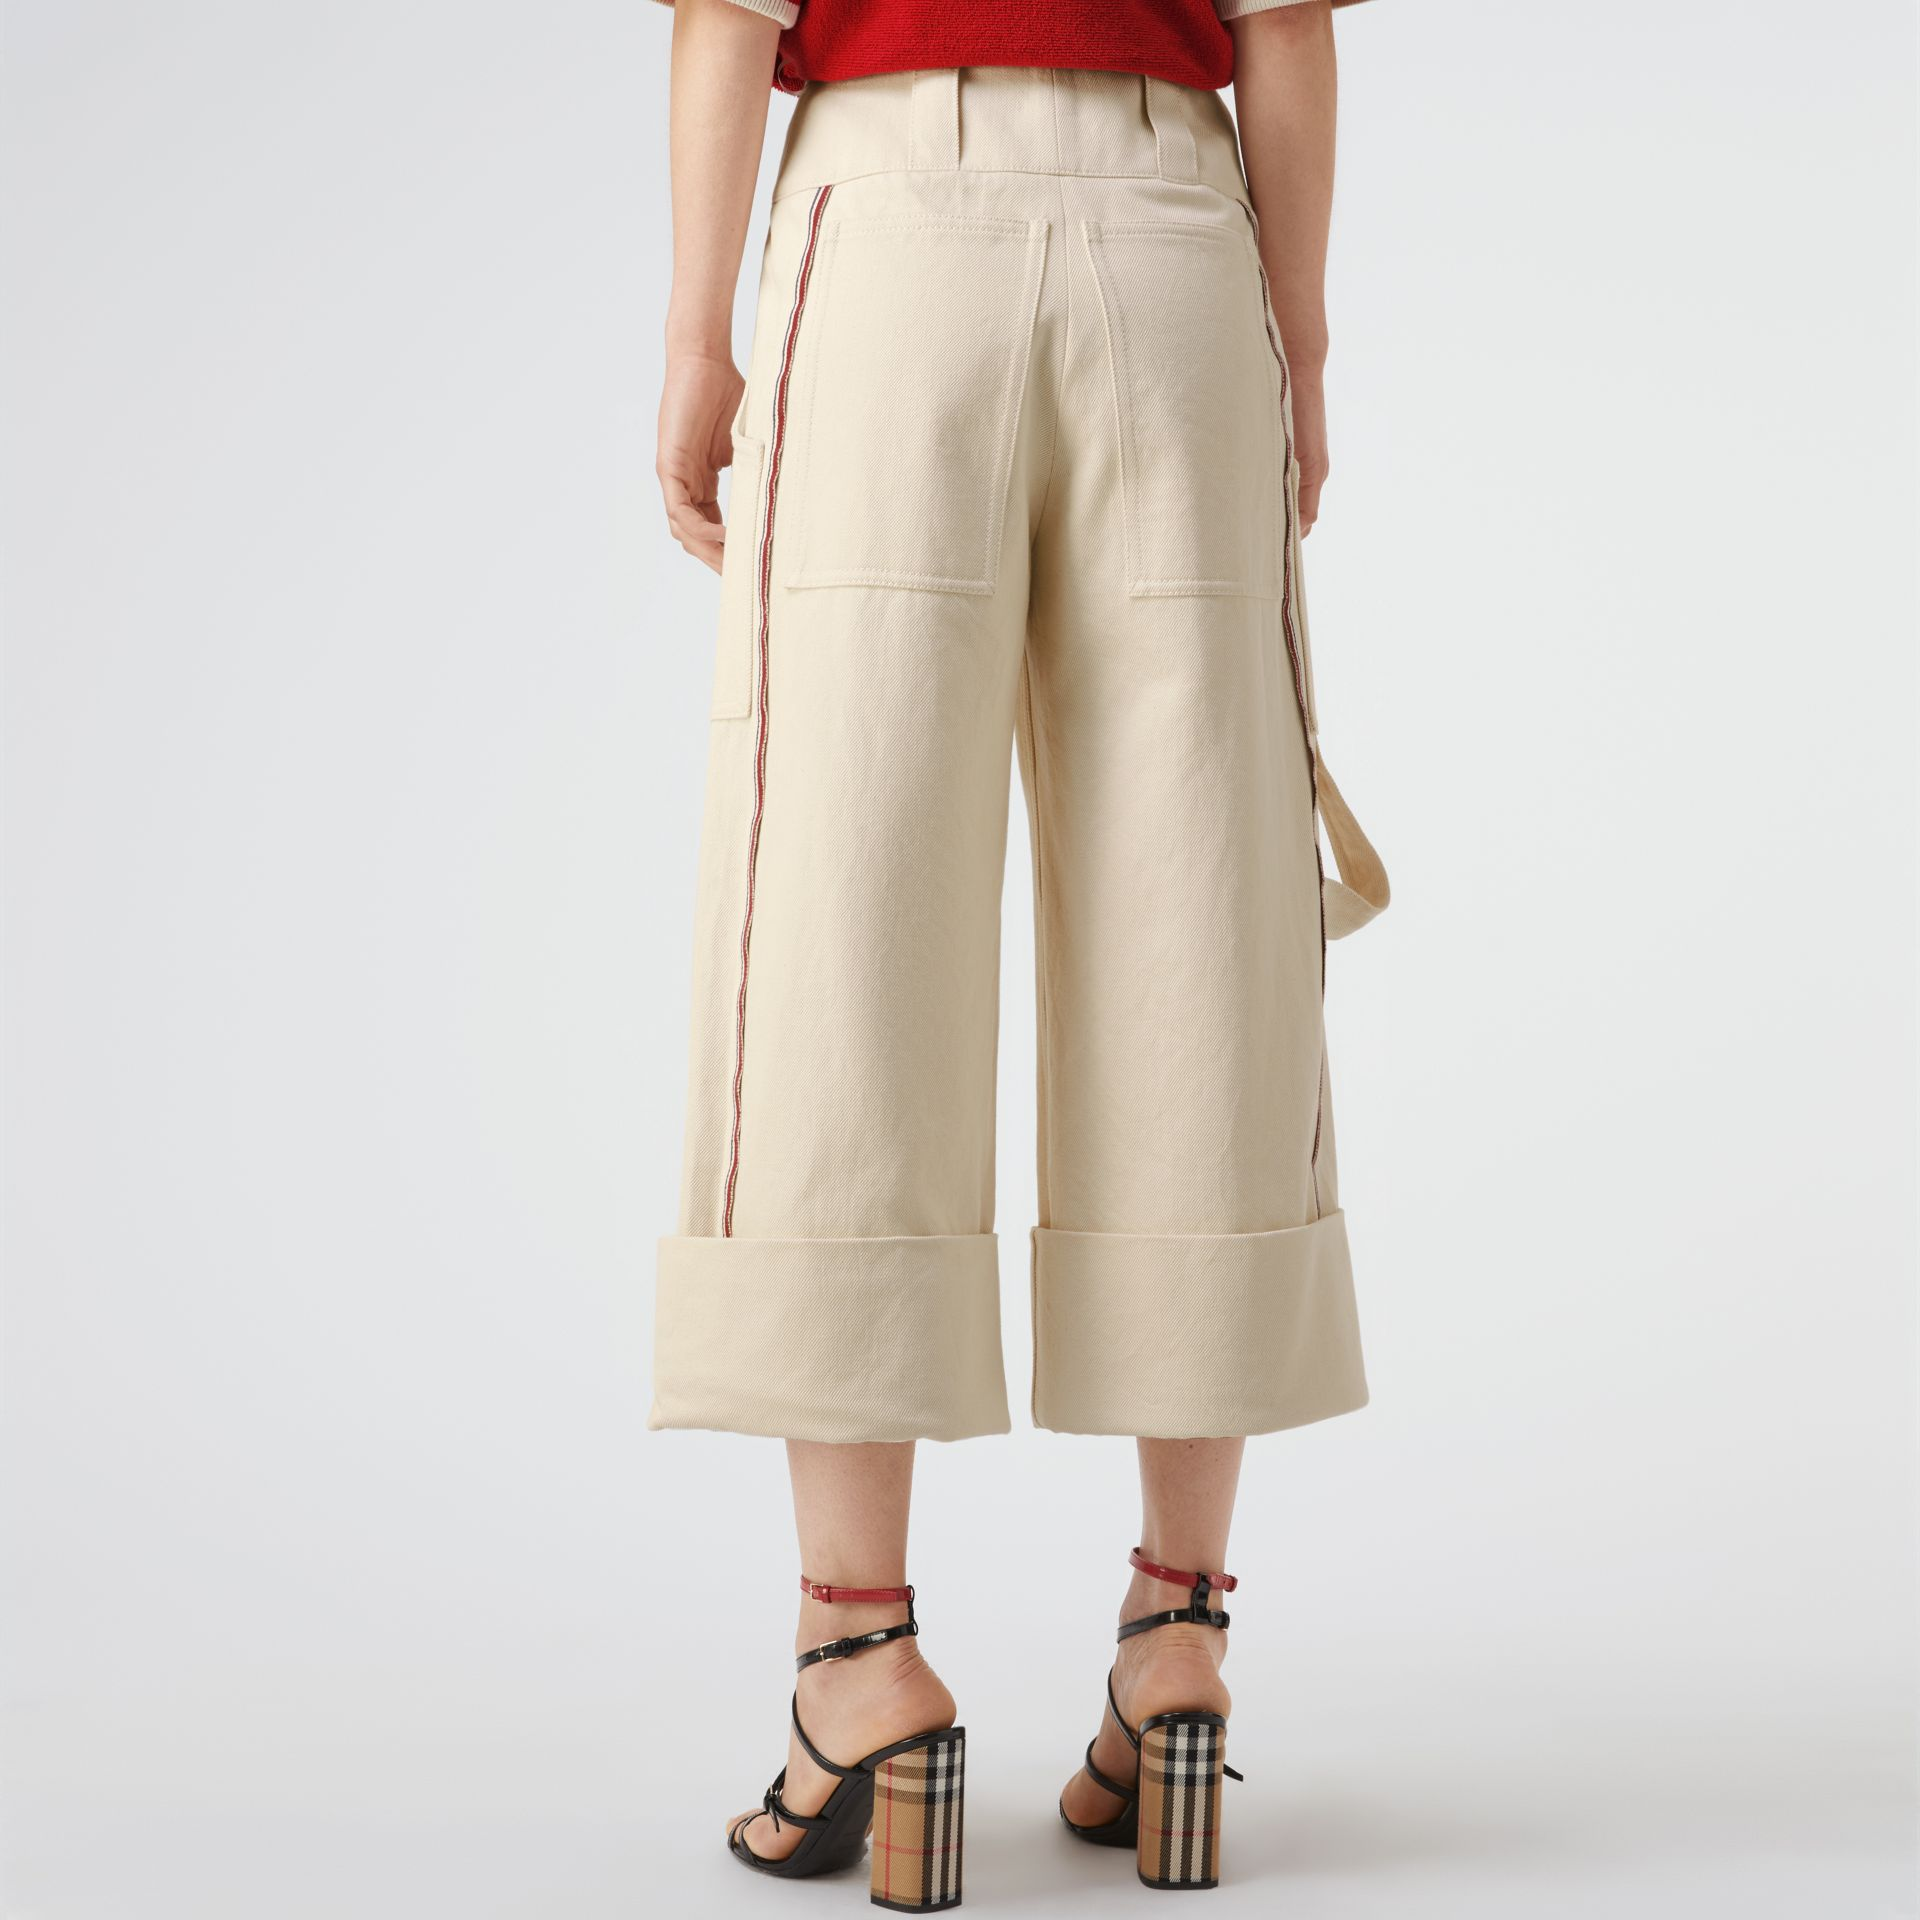 Pantalon ample 7/8 en coton à rayures (Blanc Naturel) - Femme | Burberry - photo de la galerie 2